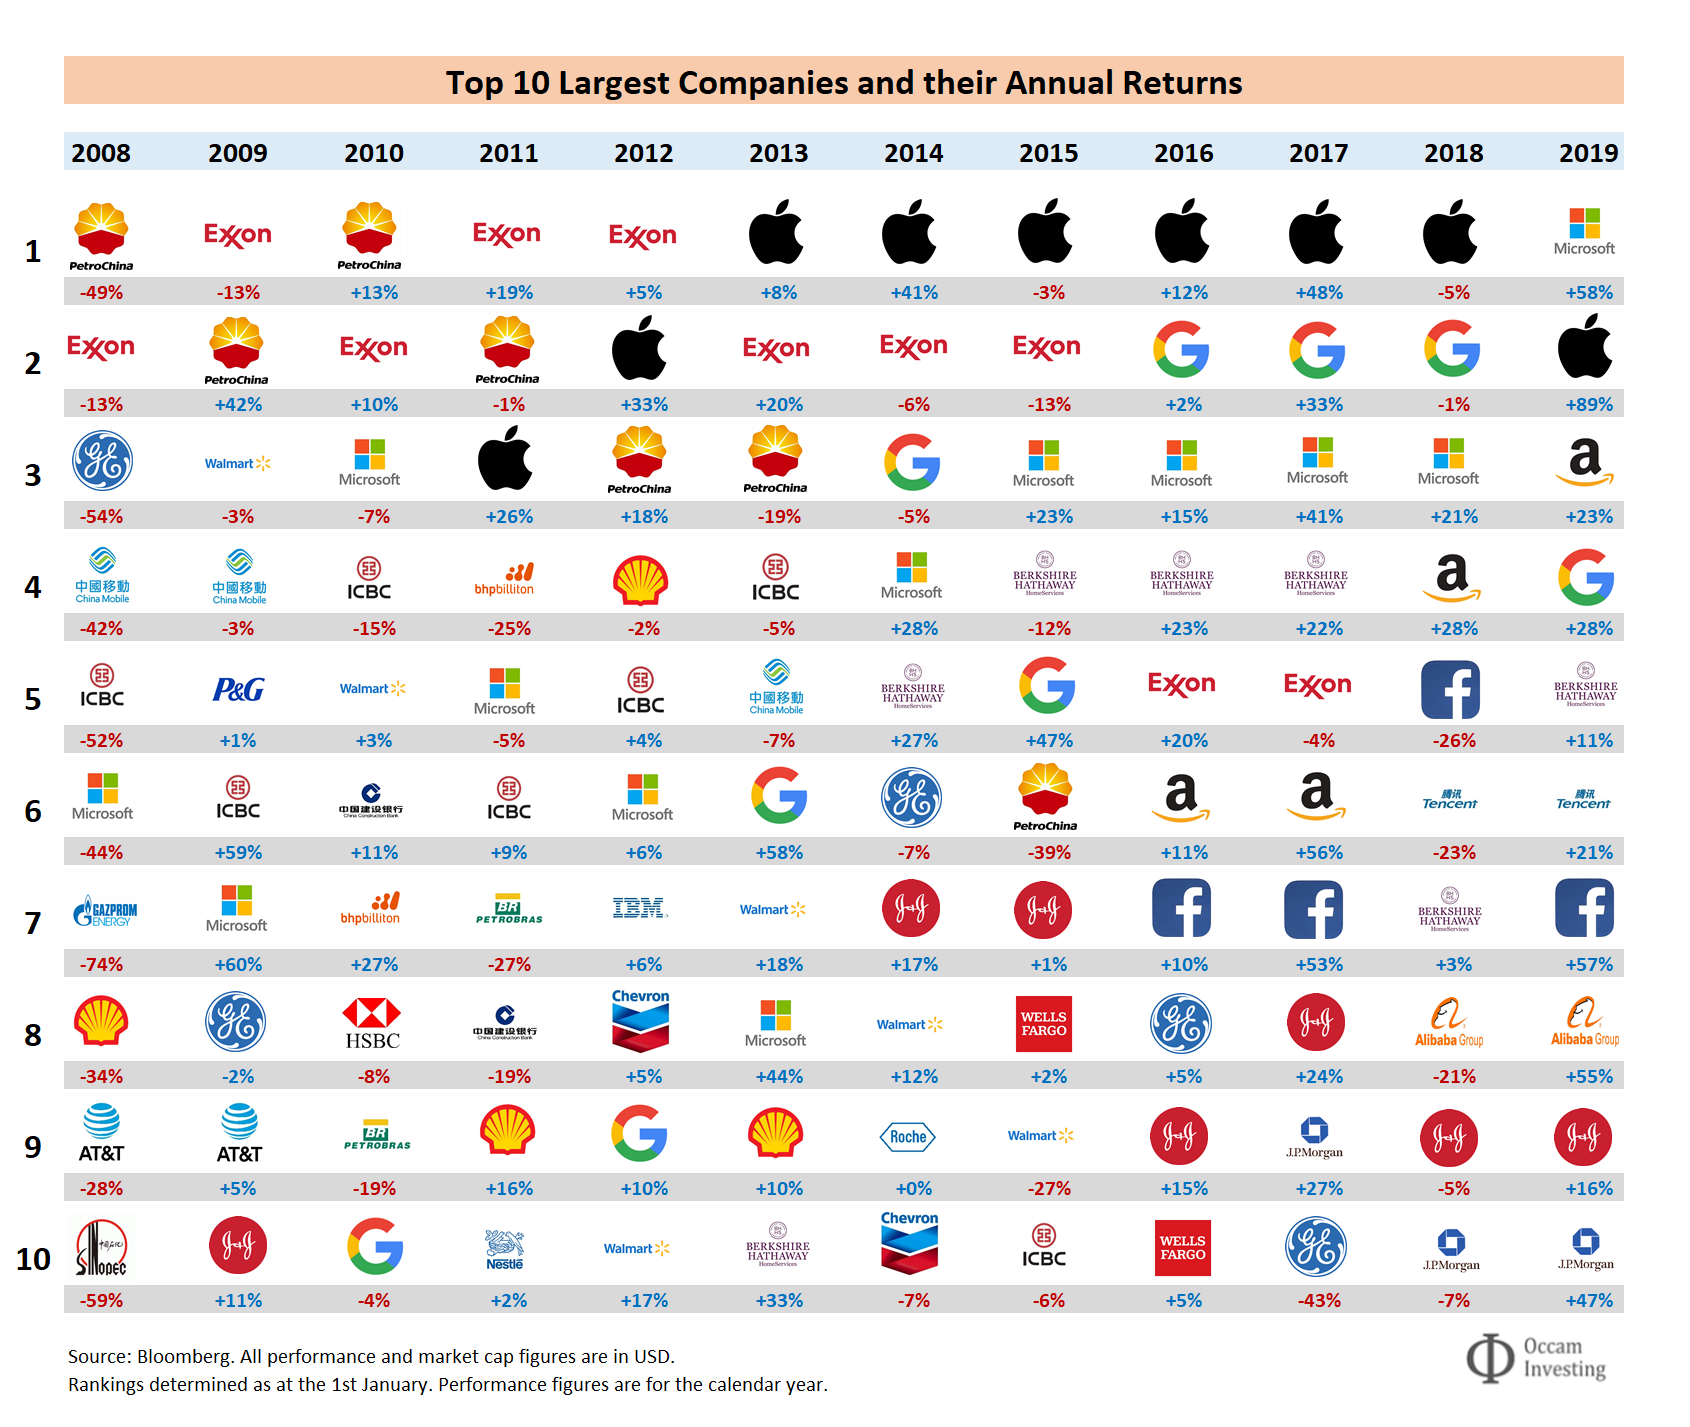 Top 10 largest companies and their annual returns 2